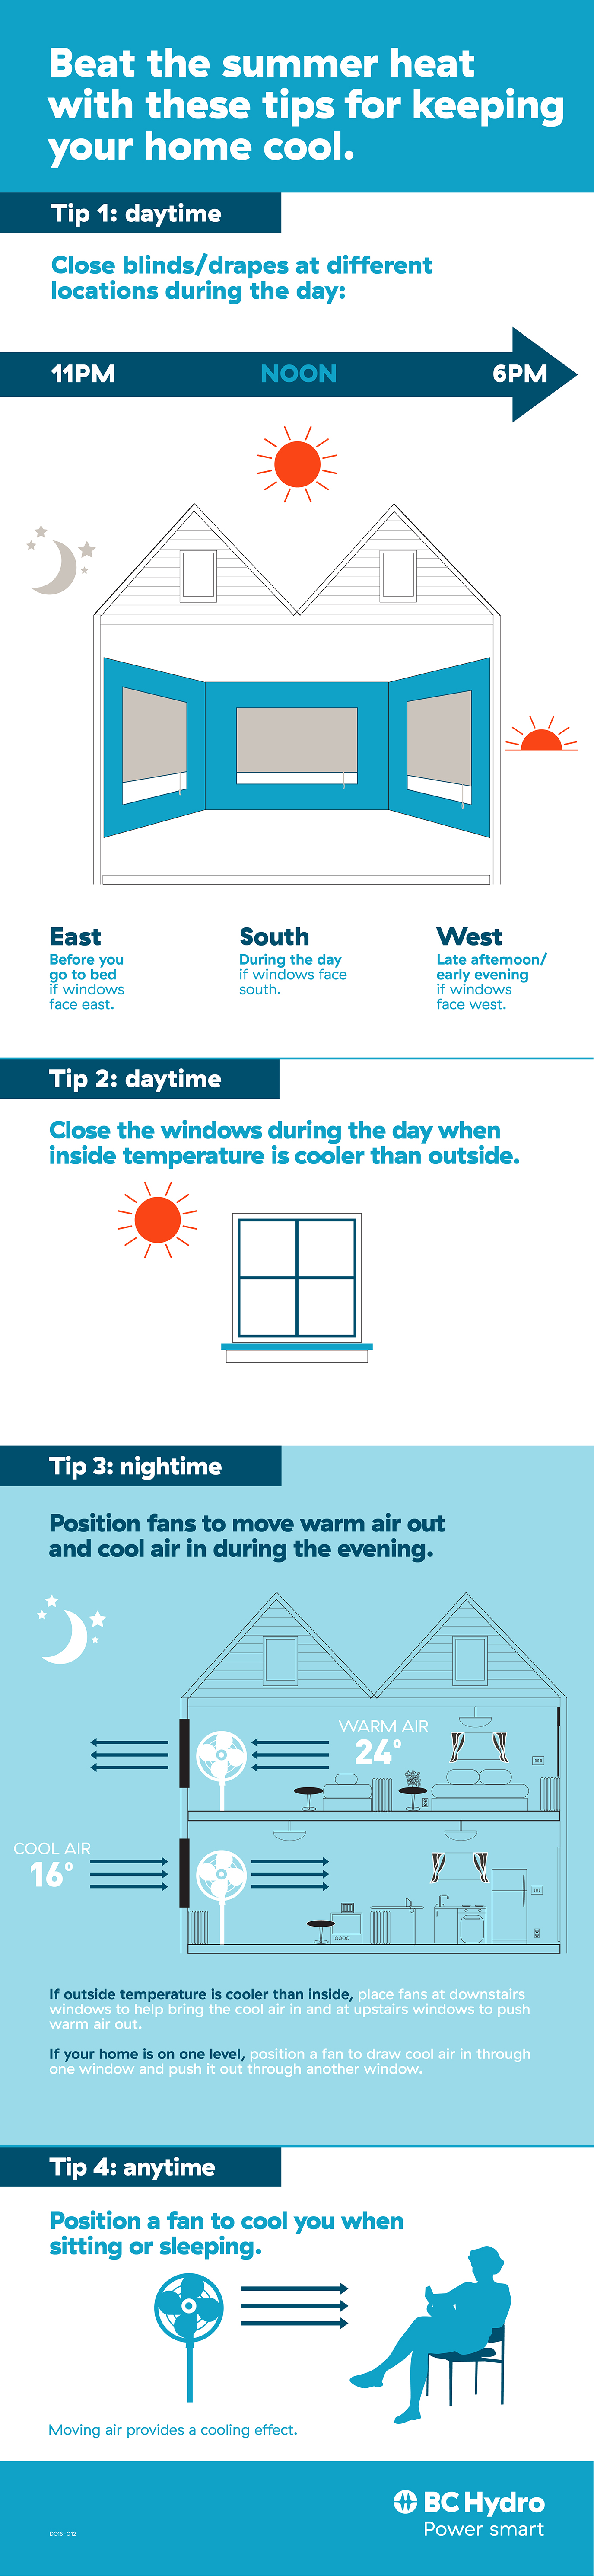 DC16-012 SummerHomeCooling Infographic